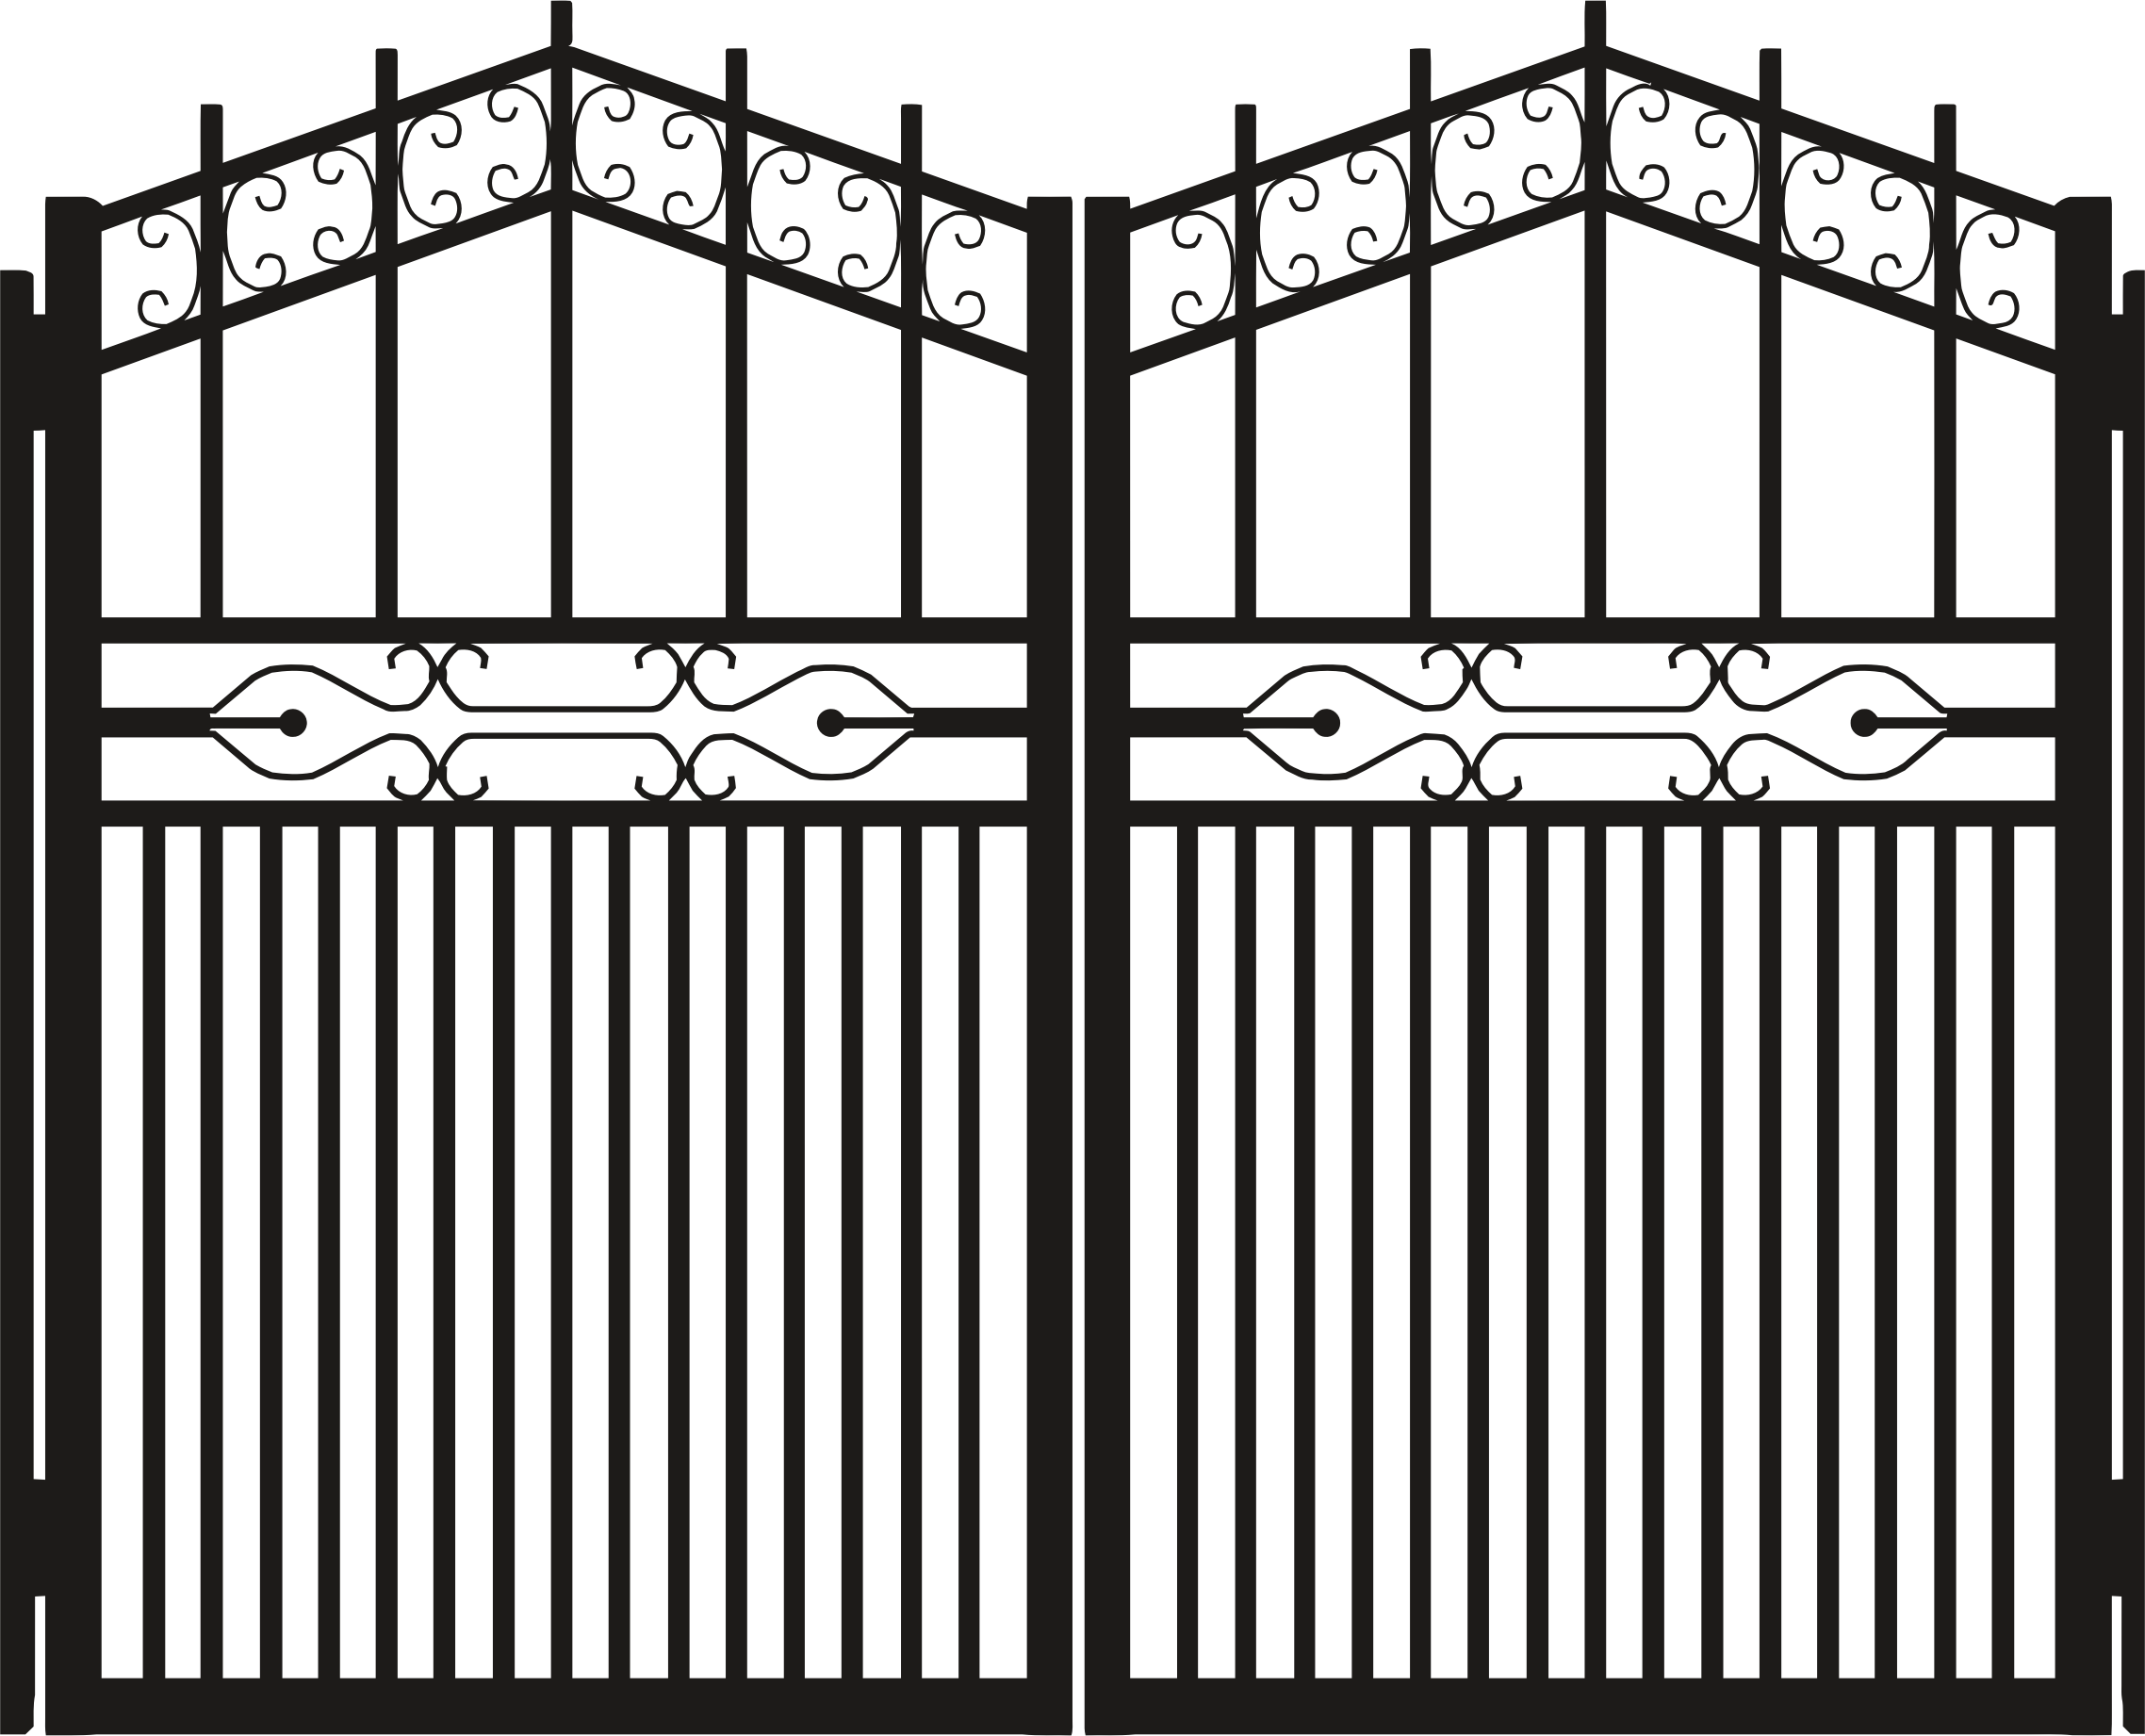 collection of high. Gate clipart transparent background